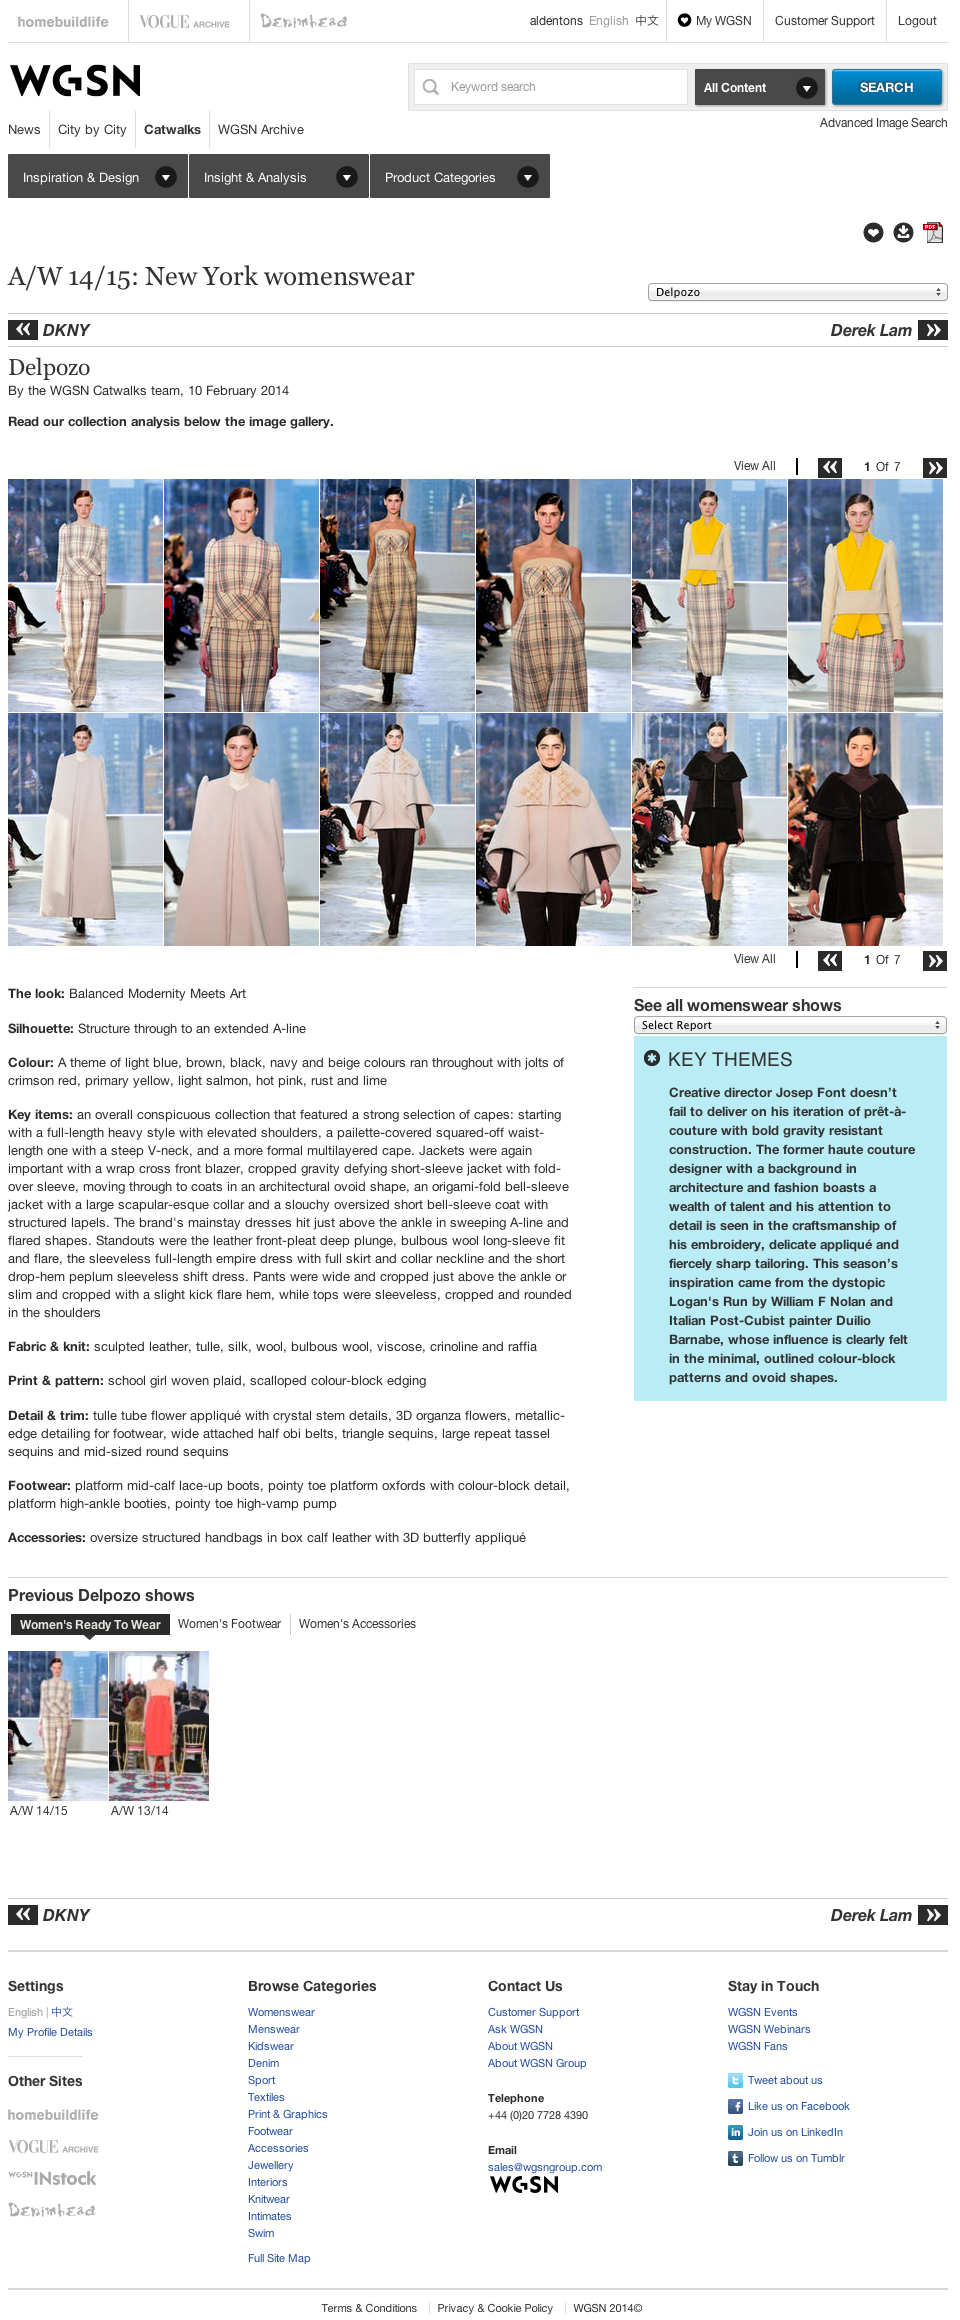 Delpozo aw1415 collection review